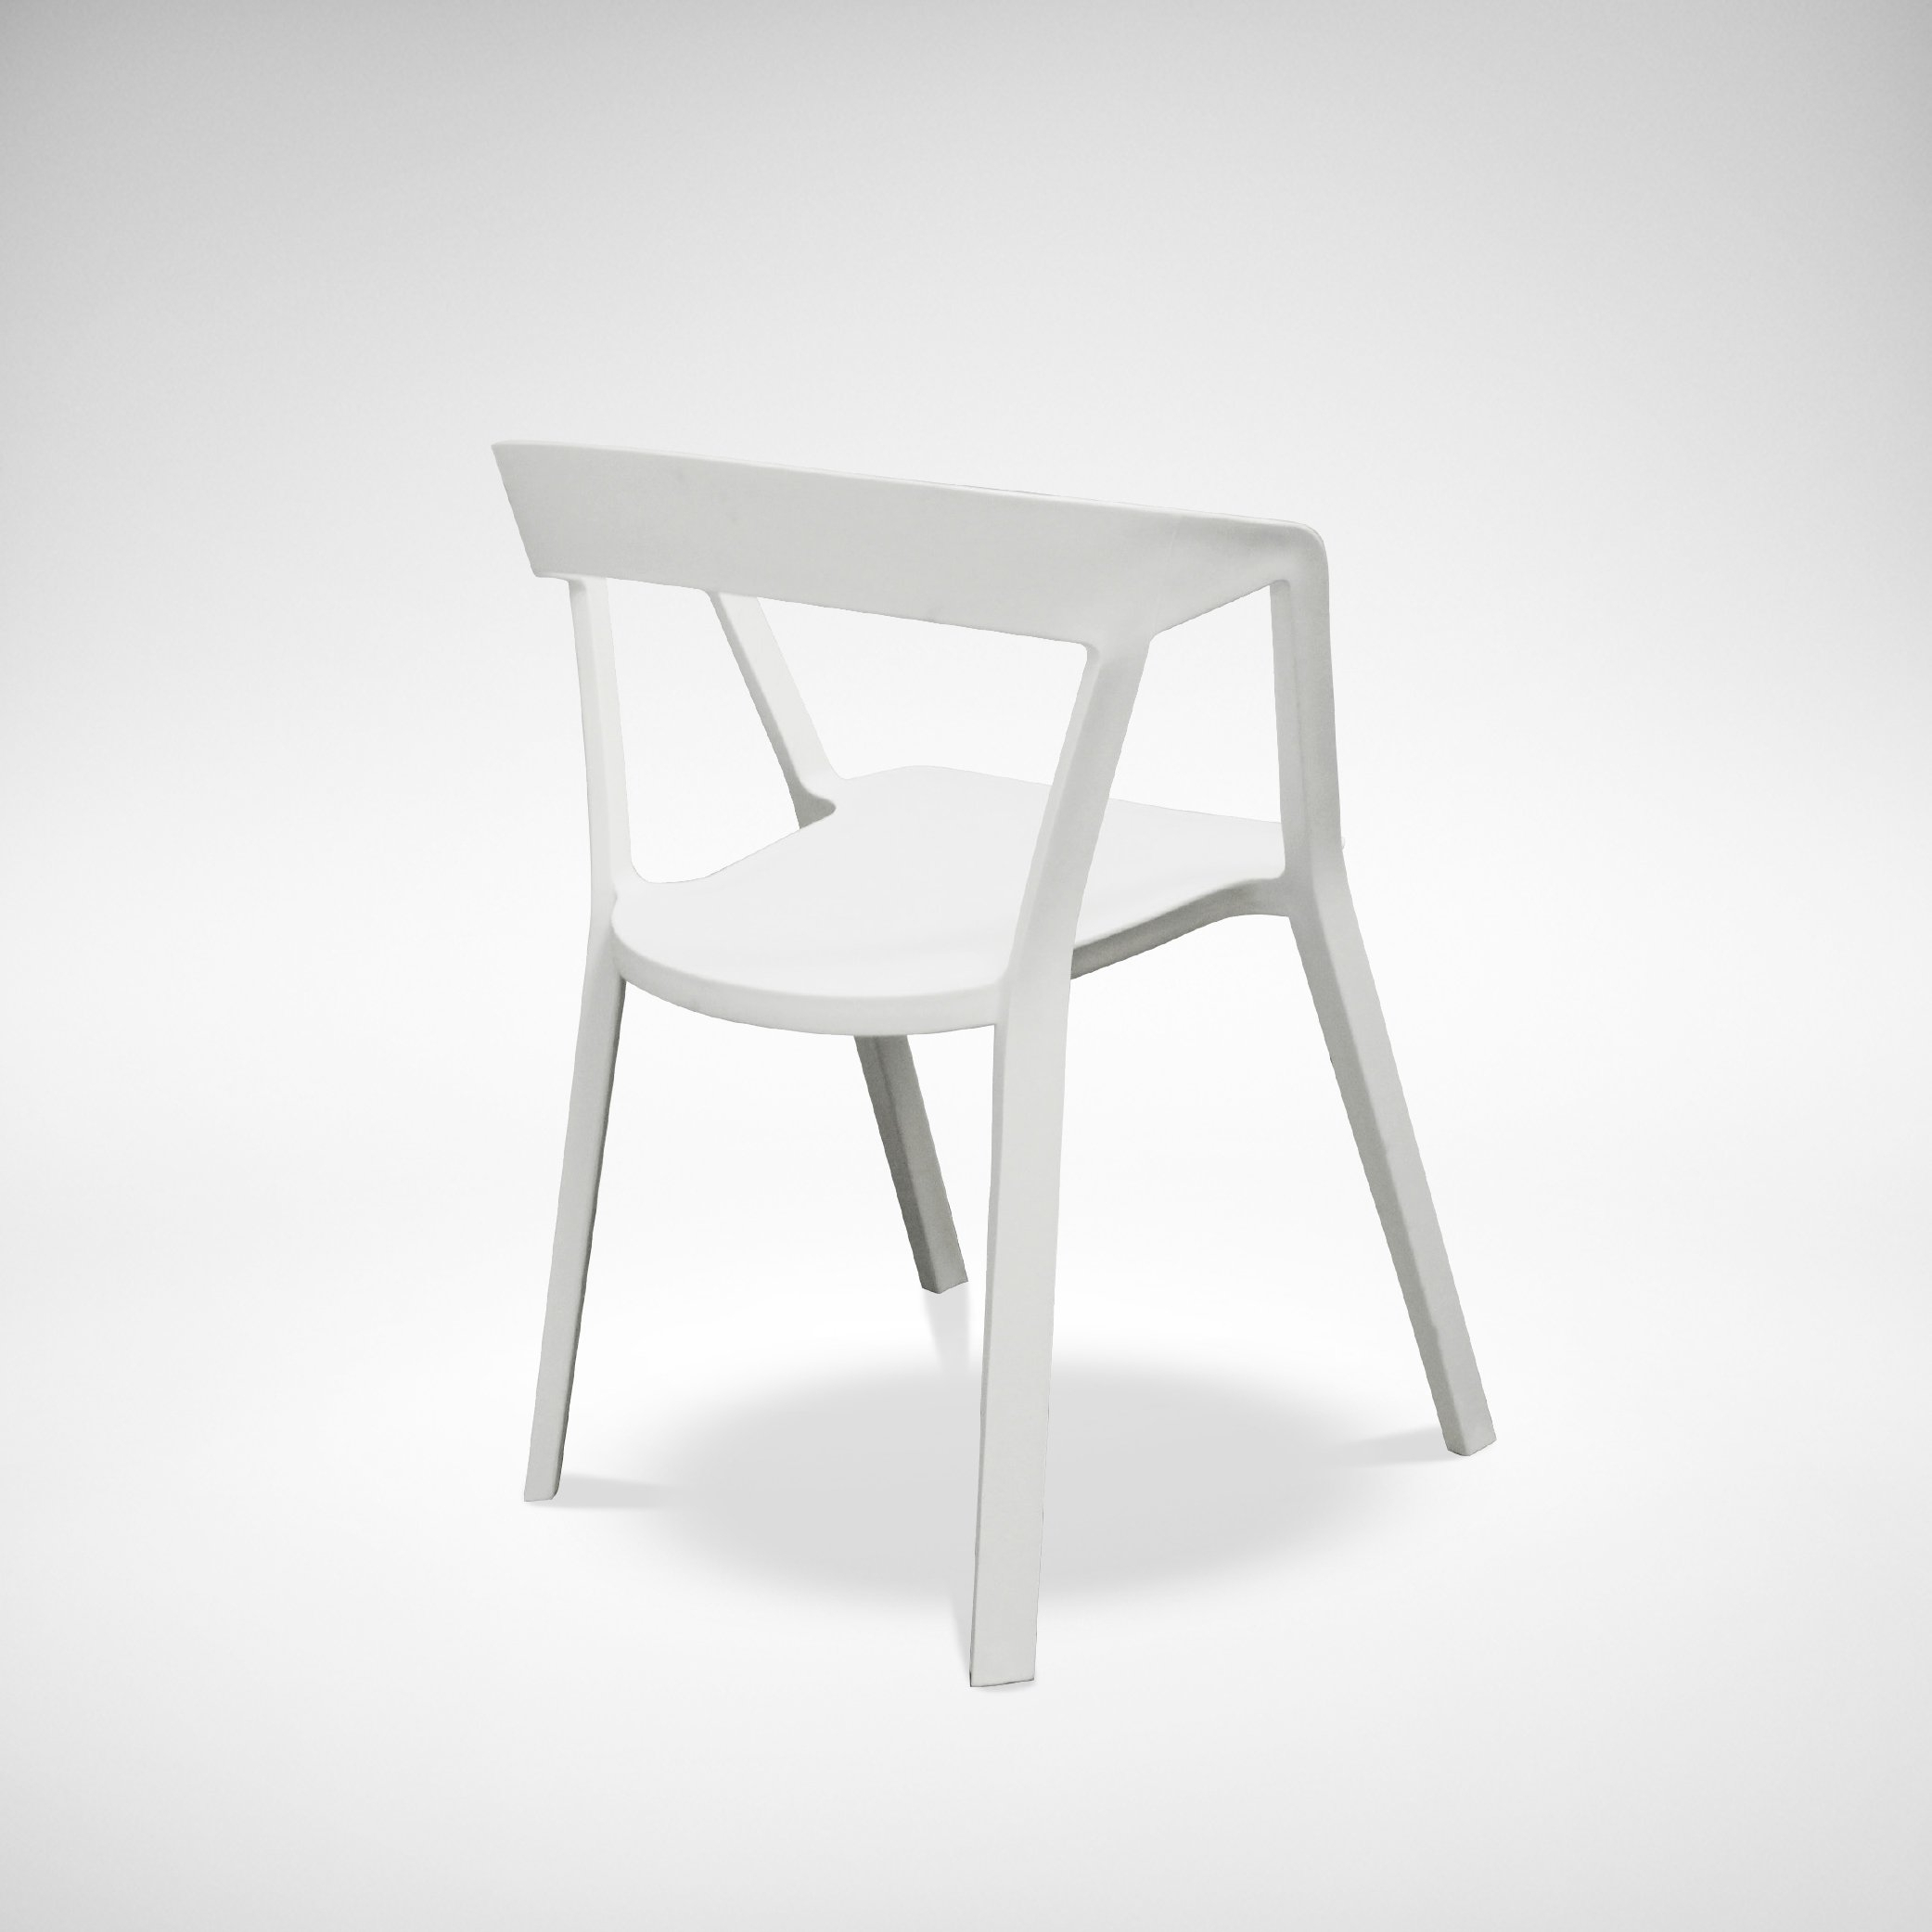 Mitchell Arm Chair | Comfort Design – The Chair & Table People Intended For Mitchell Arm Sofa Chairs (Image 11 of 25)